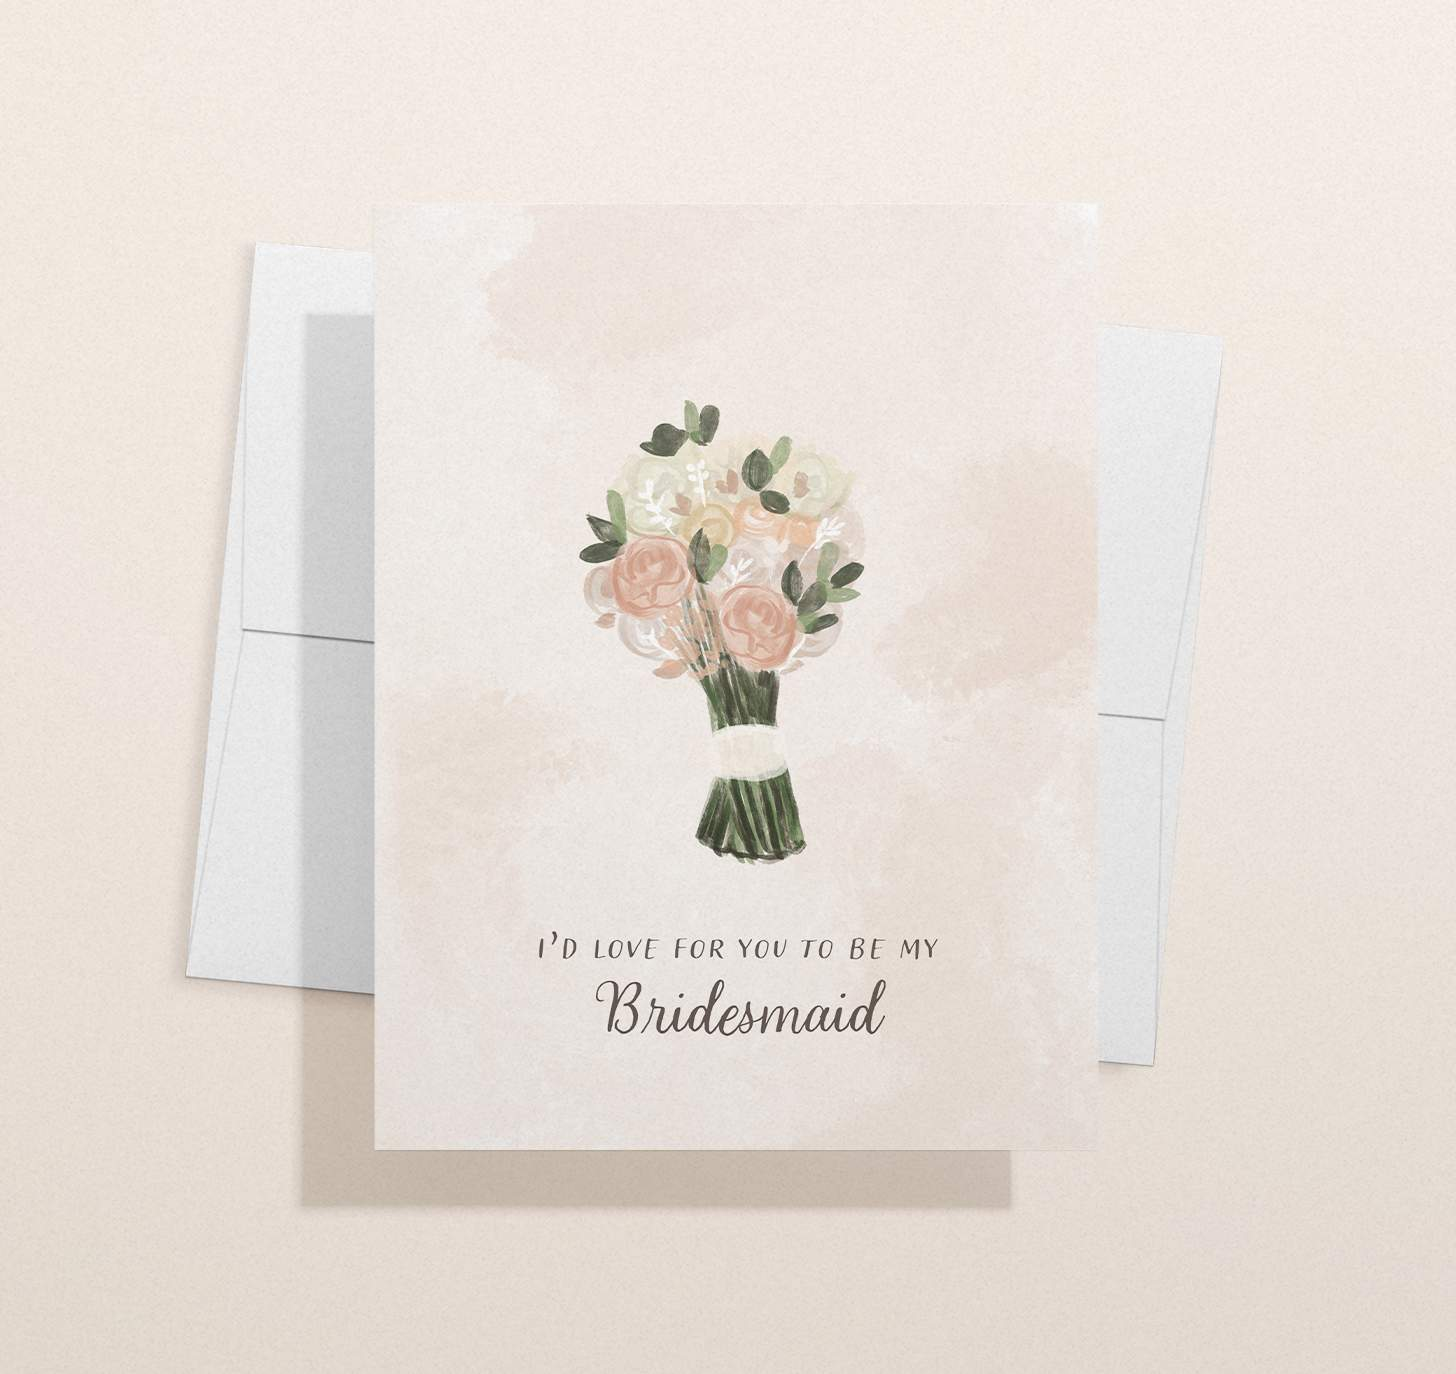 Pink, white, and green wedding flower bouquet design with envelope